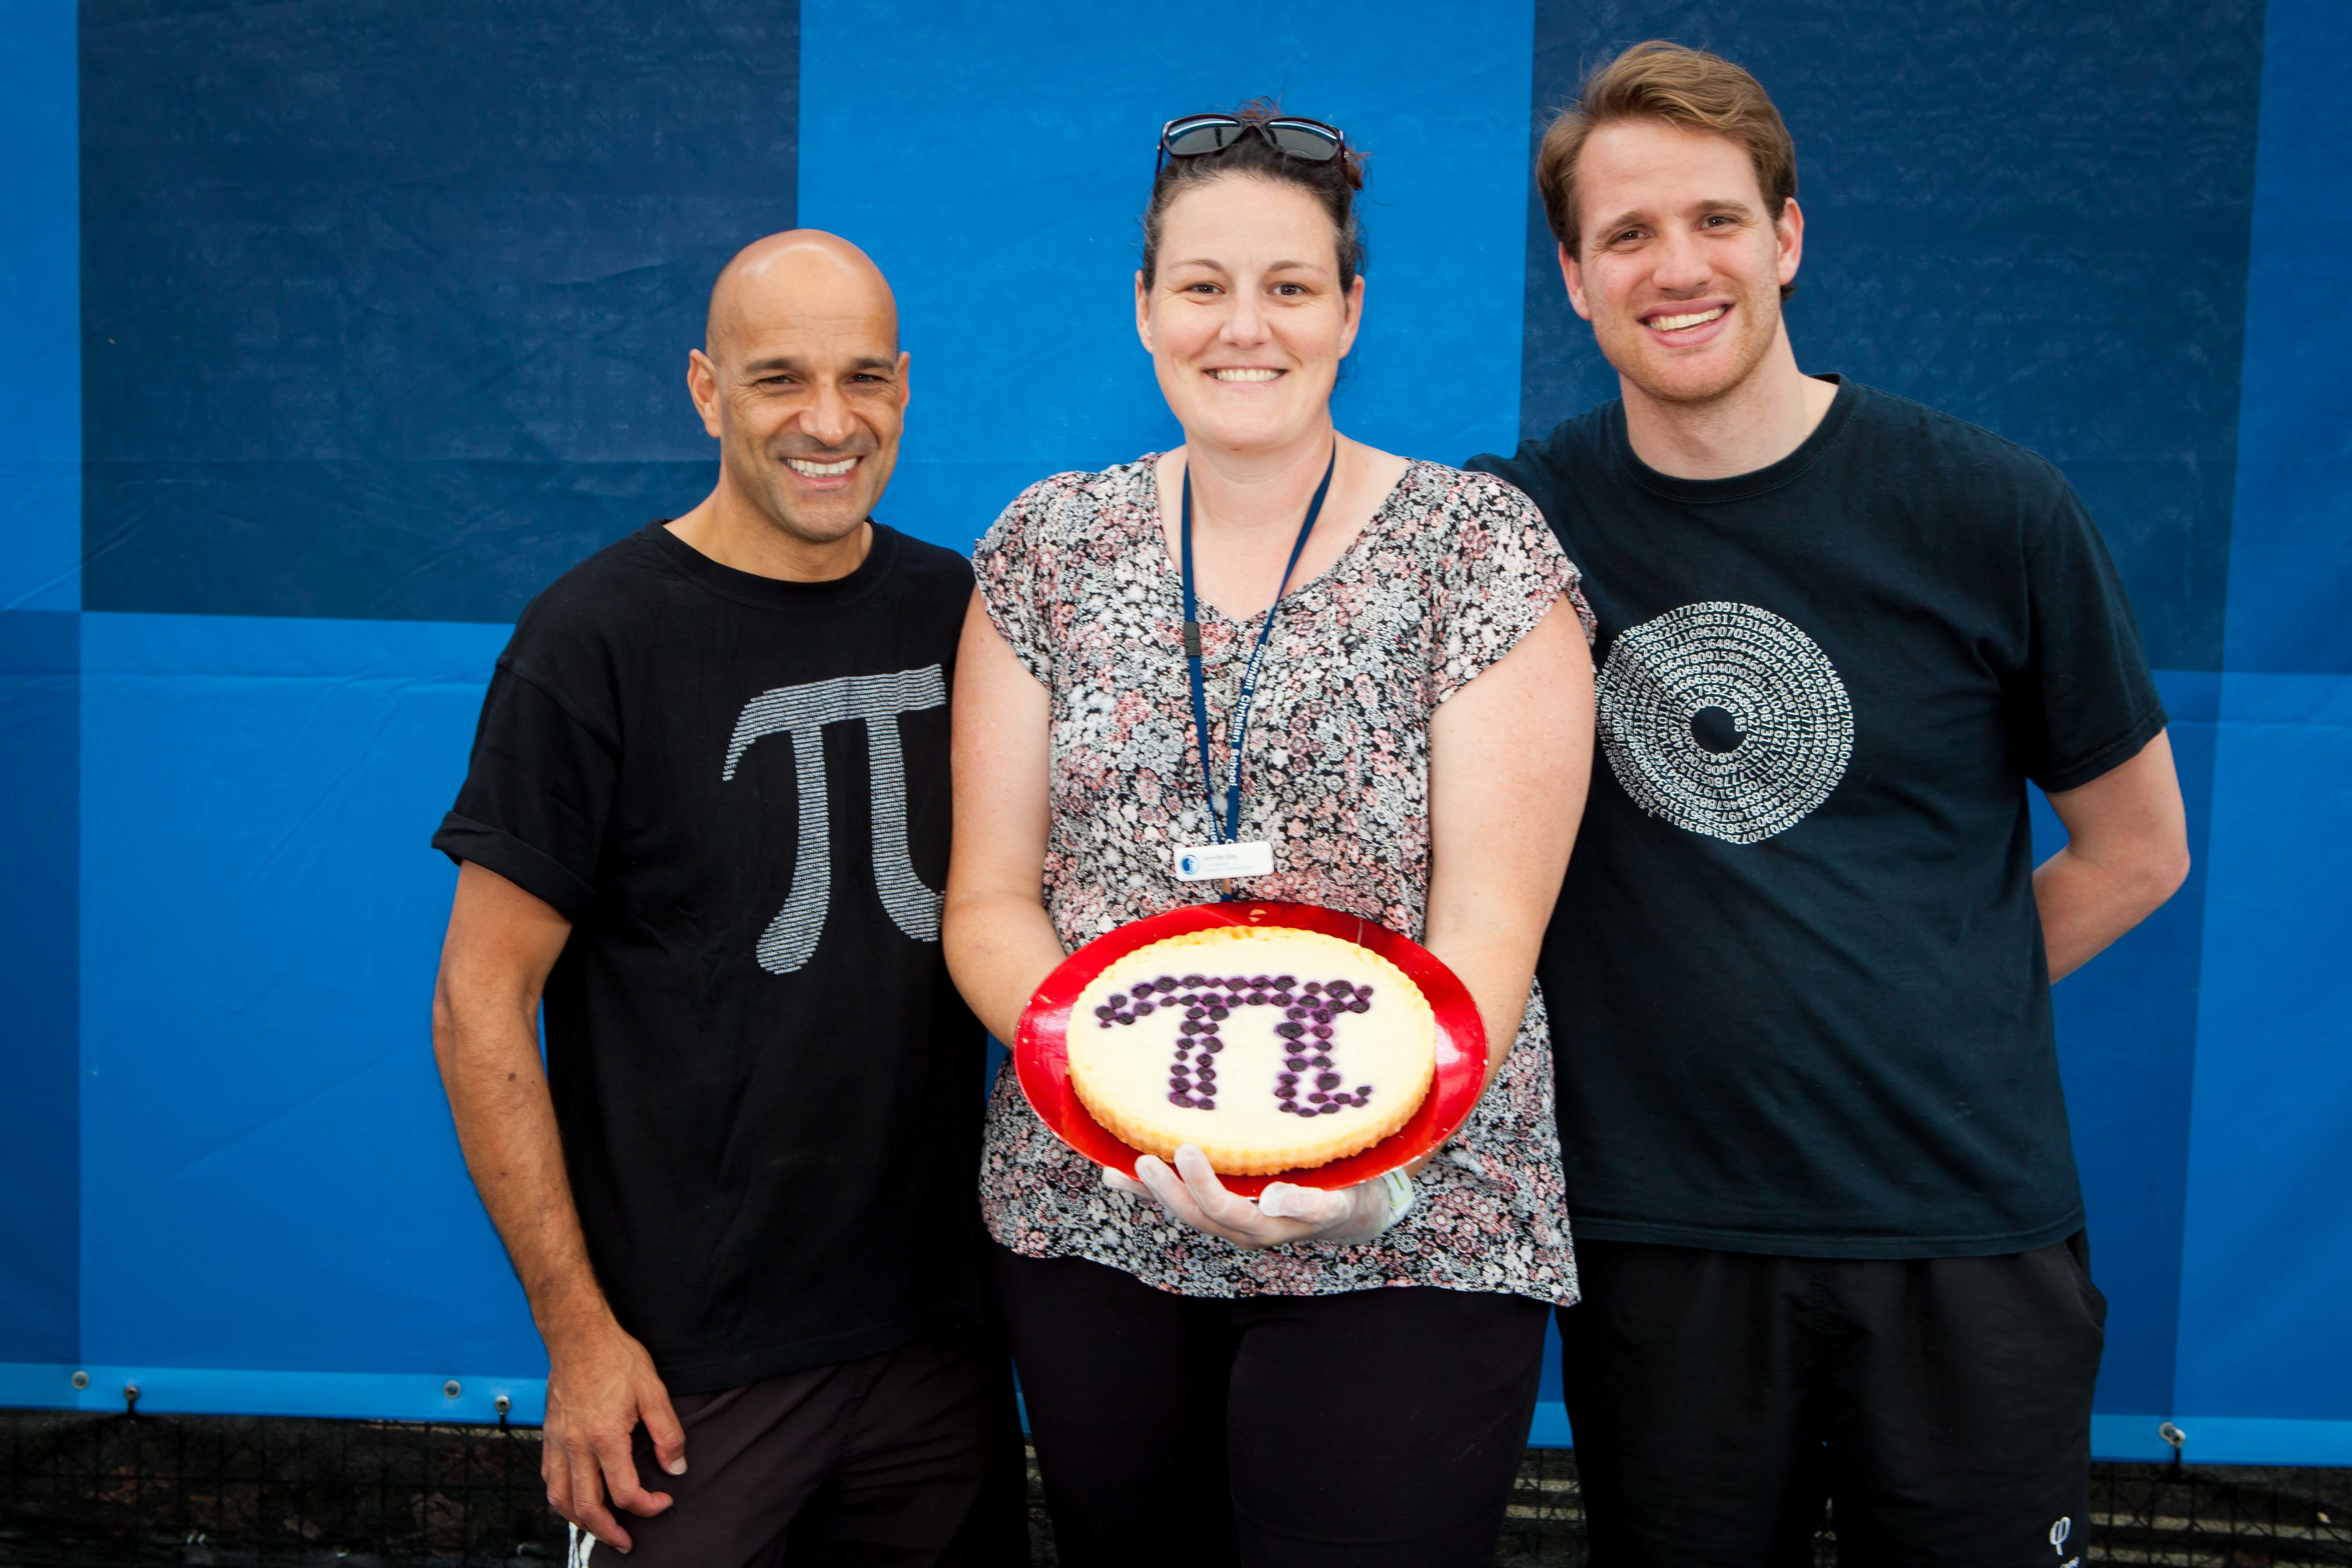 Maths celebrated at Pi day at academically rigorous school